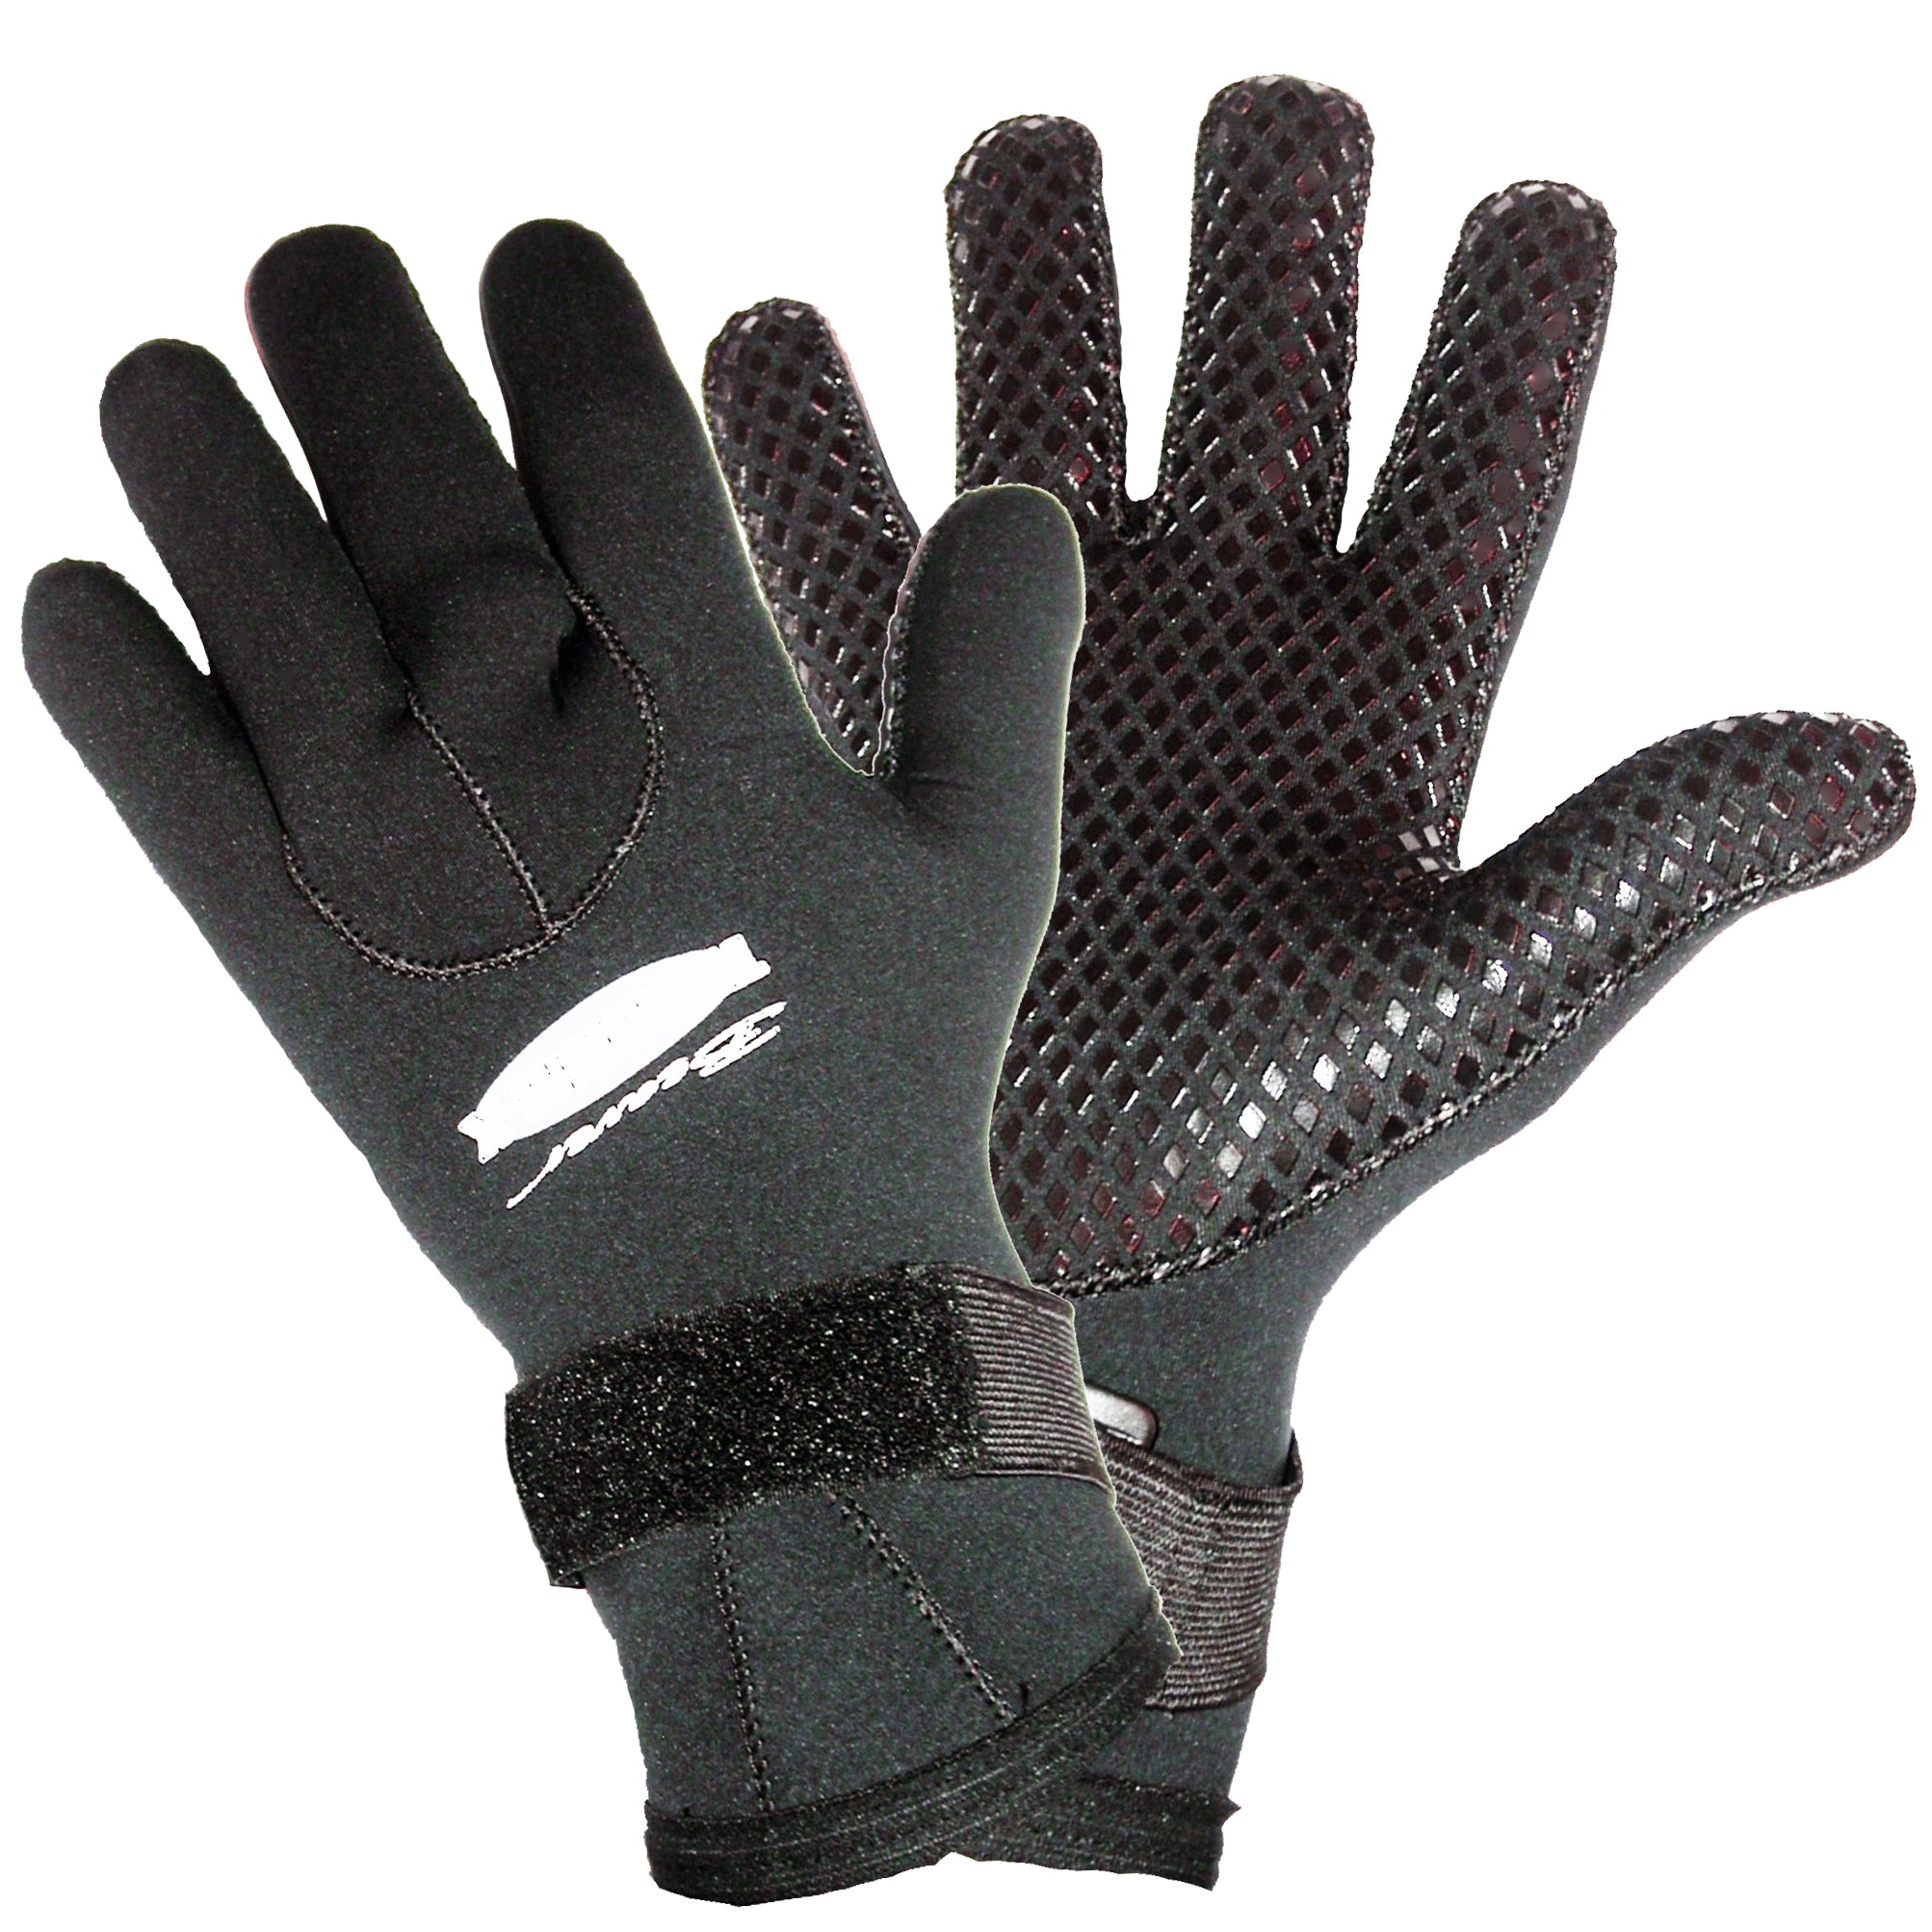 Beaver 3mm Superstretch GT3 Gloves - last few to clear